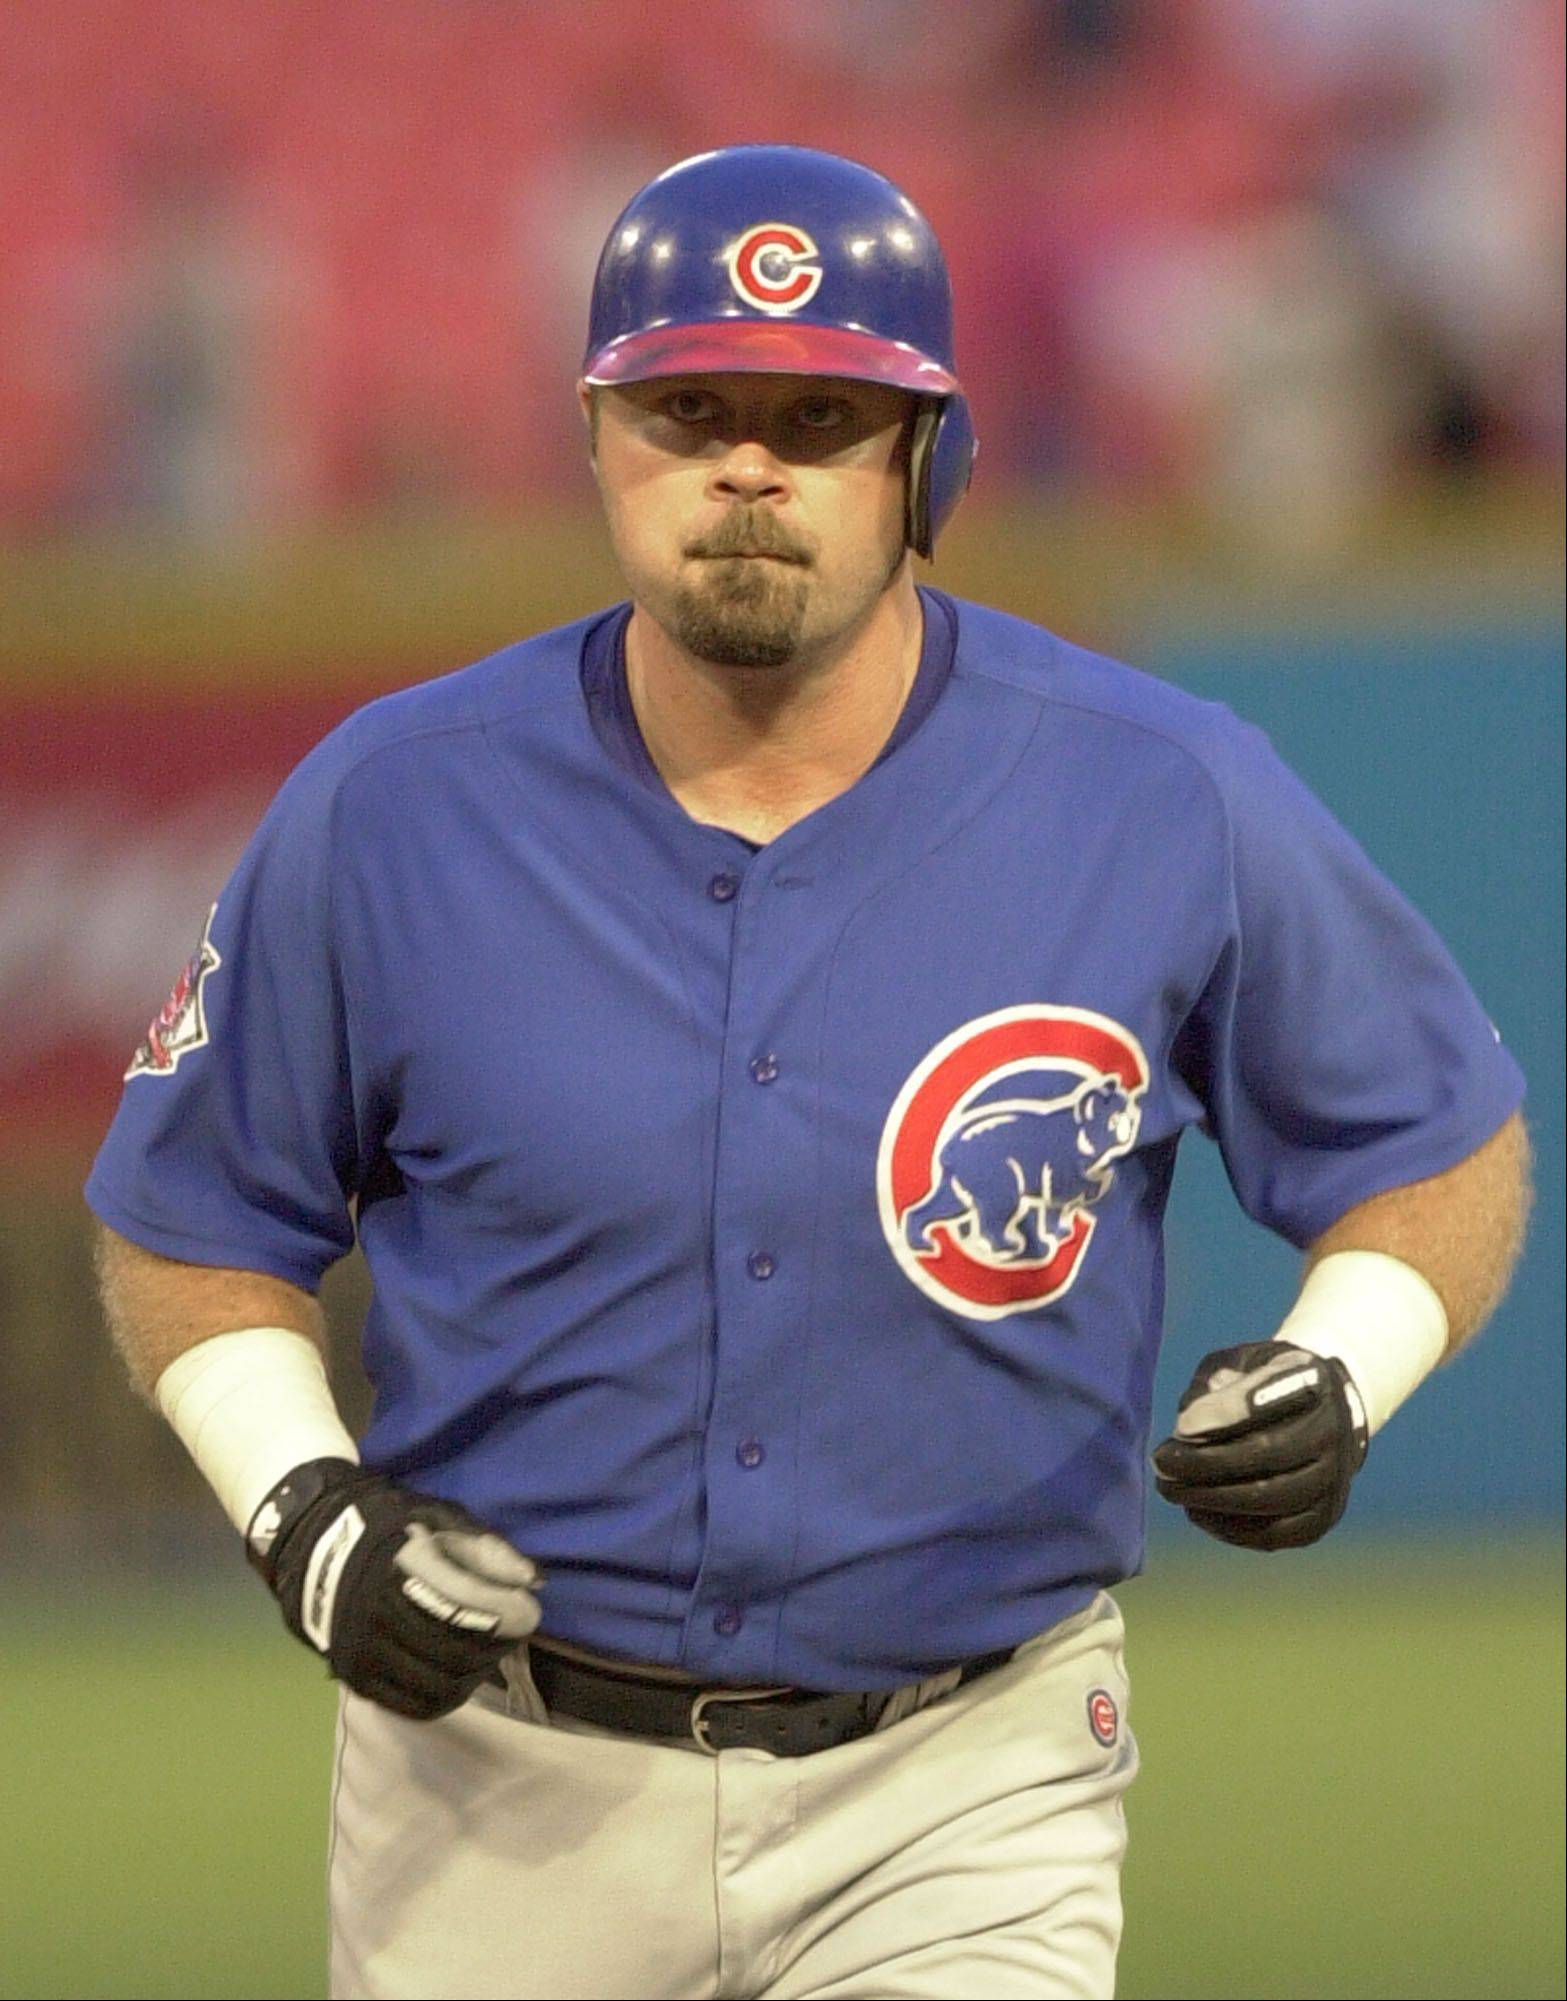 Associated Press/2001 fileFormer Cubs player Ron Coomer could be in the mix of candidates seeking to fill the radio analyst job.